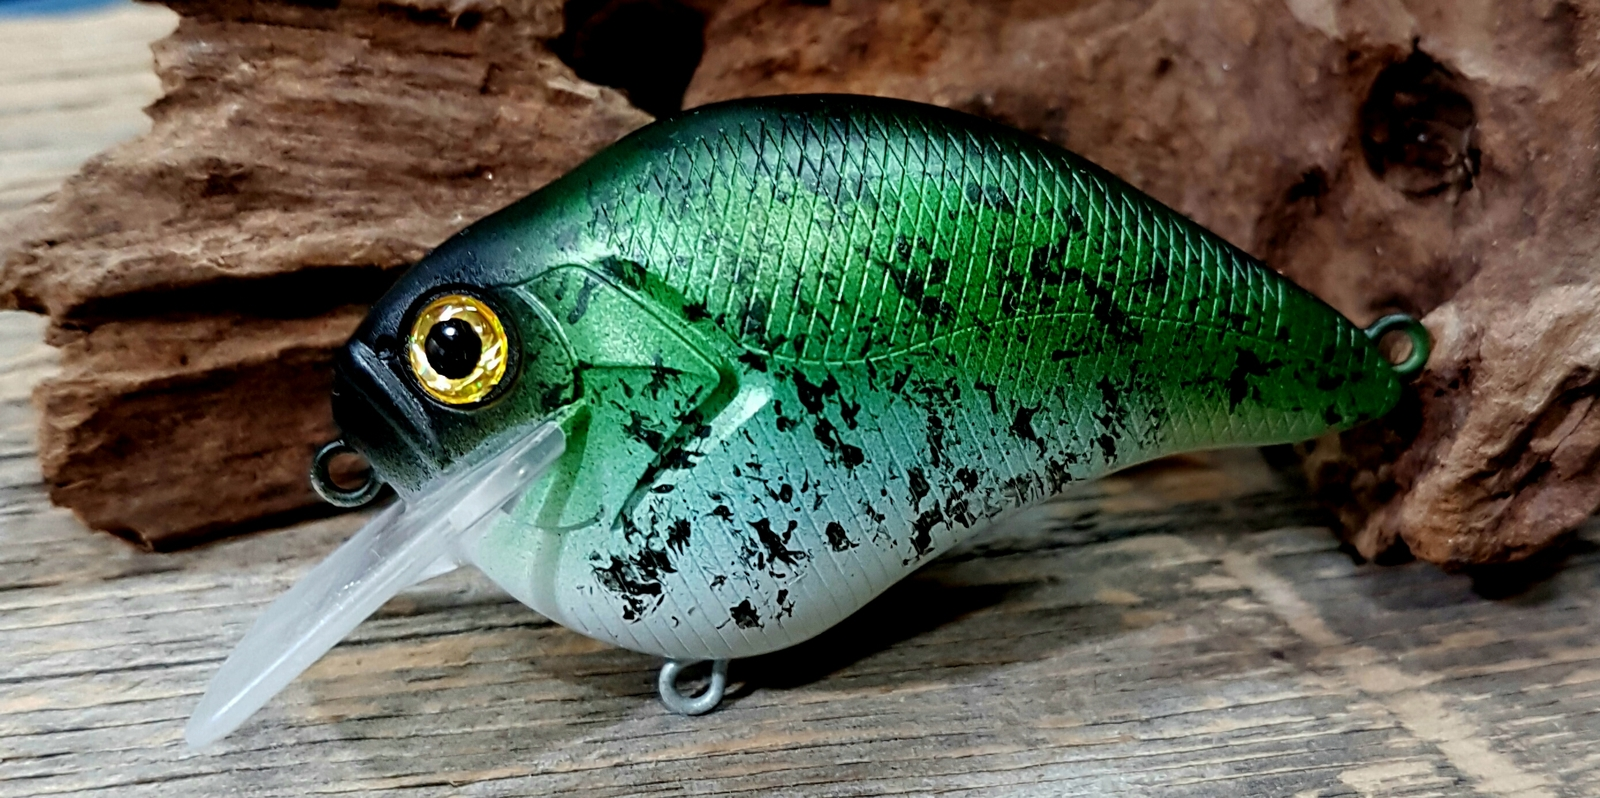 Black crappie inspired.